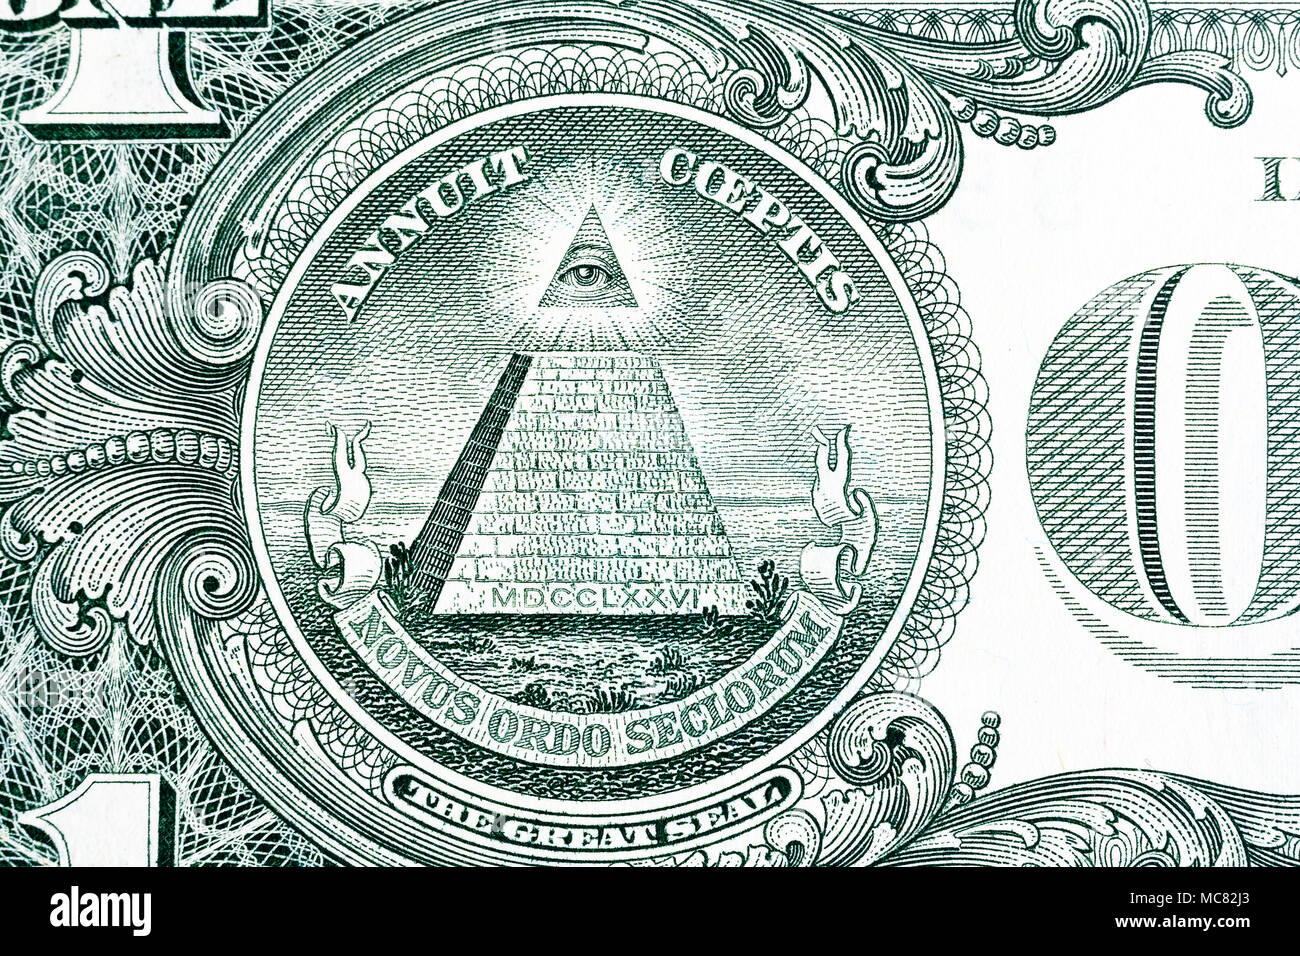 Part of one dollar note with great seal a macro shot. - Stock Image